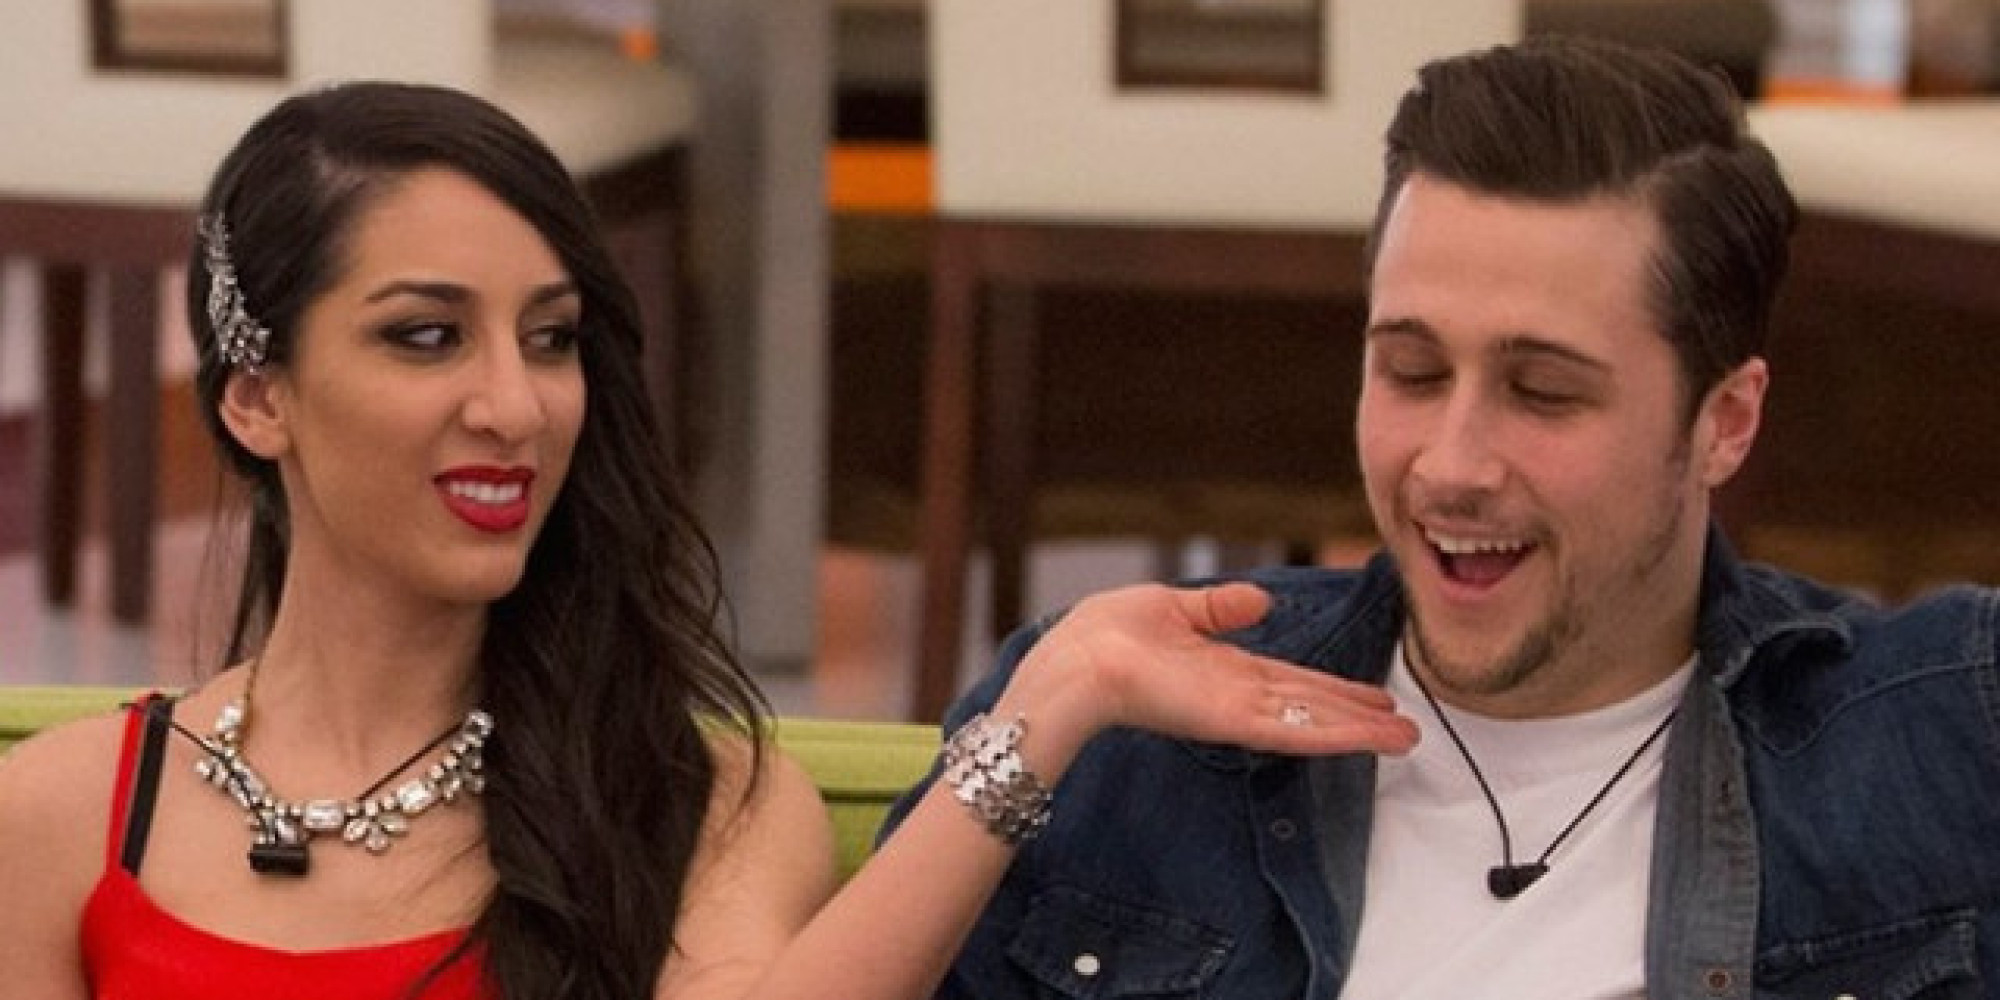 neda and jon dating games